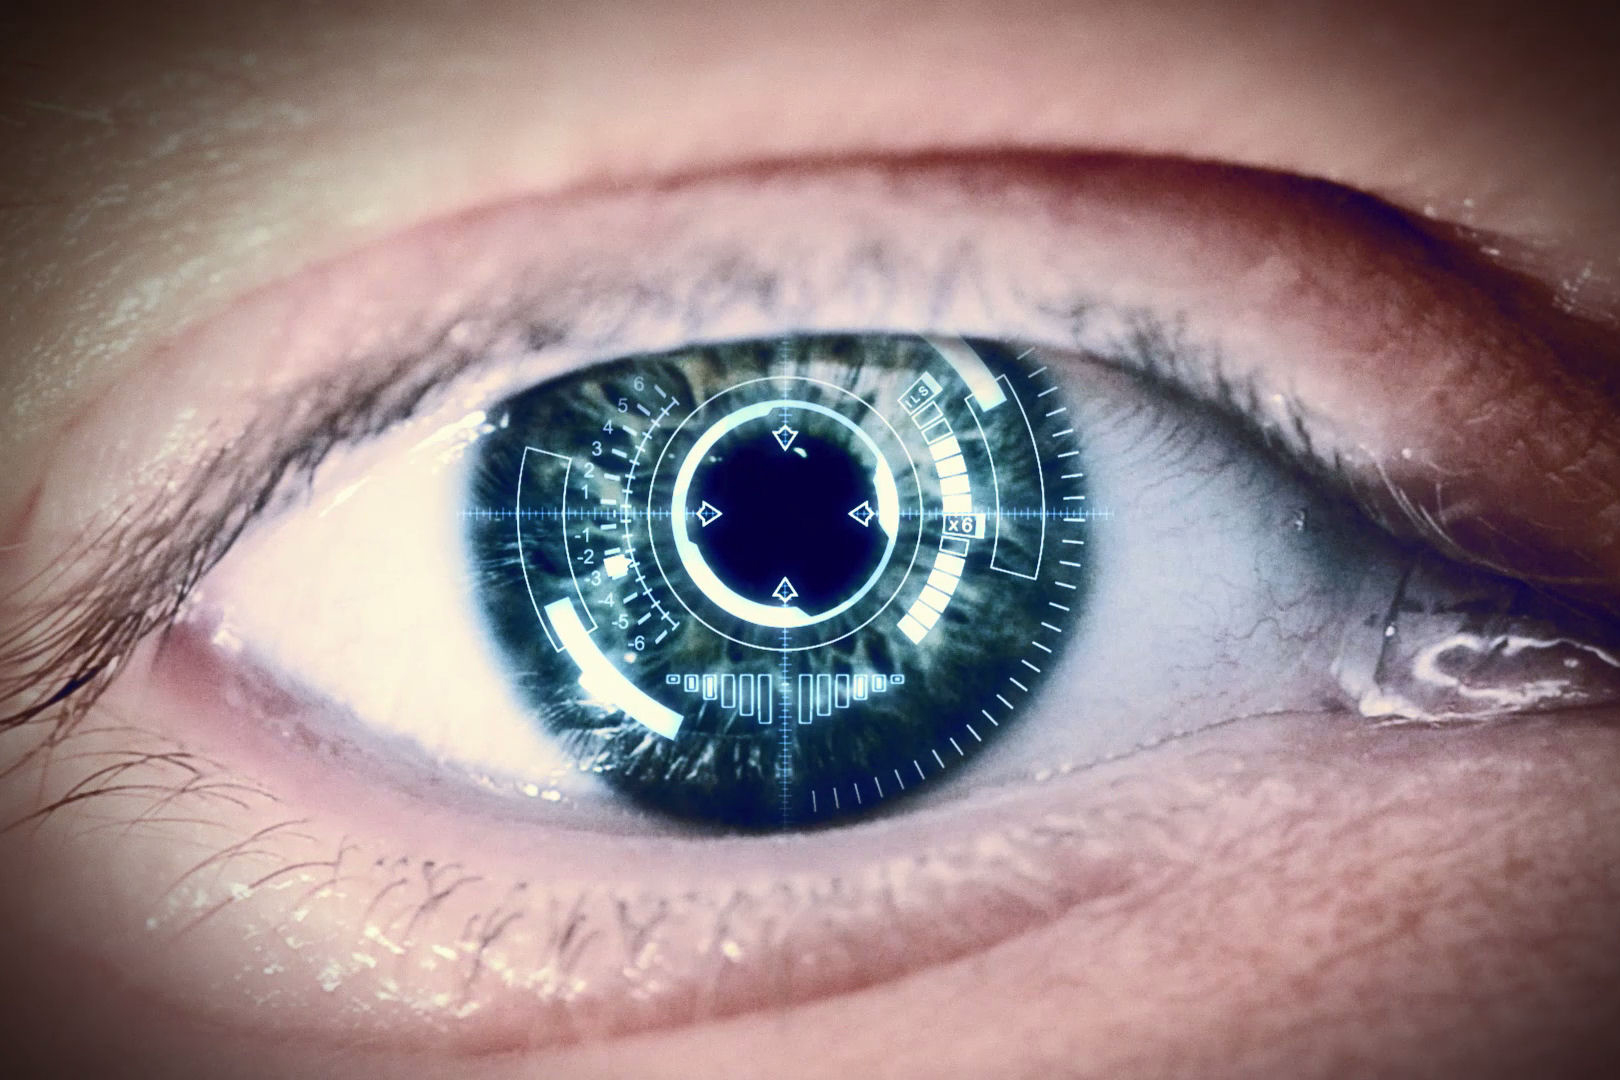 Sony Patents Smart Contact Lens Camera Technology